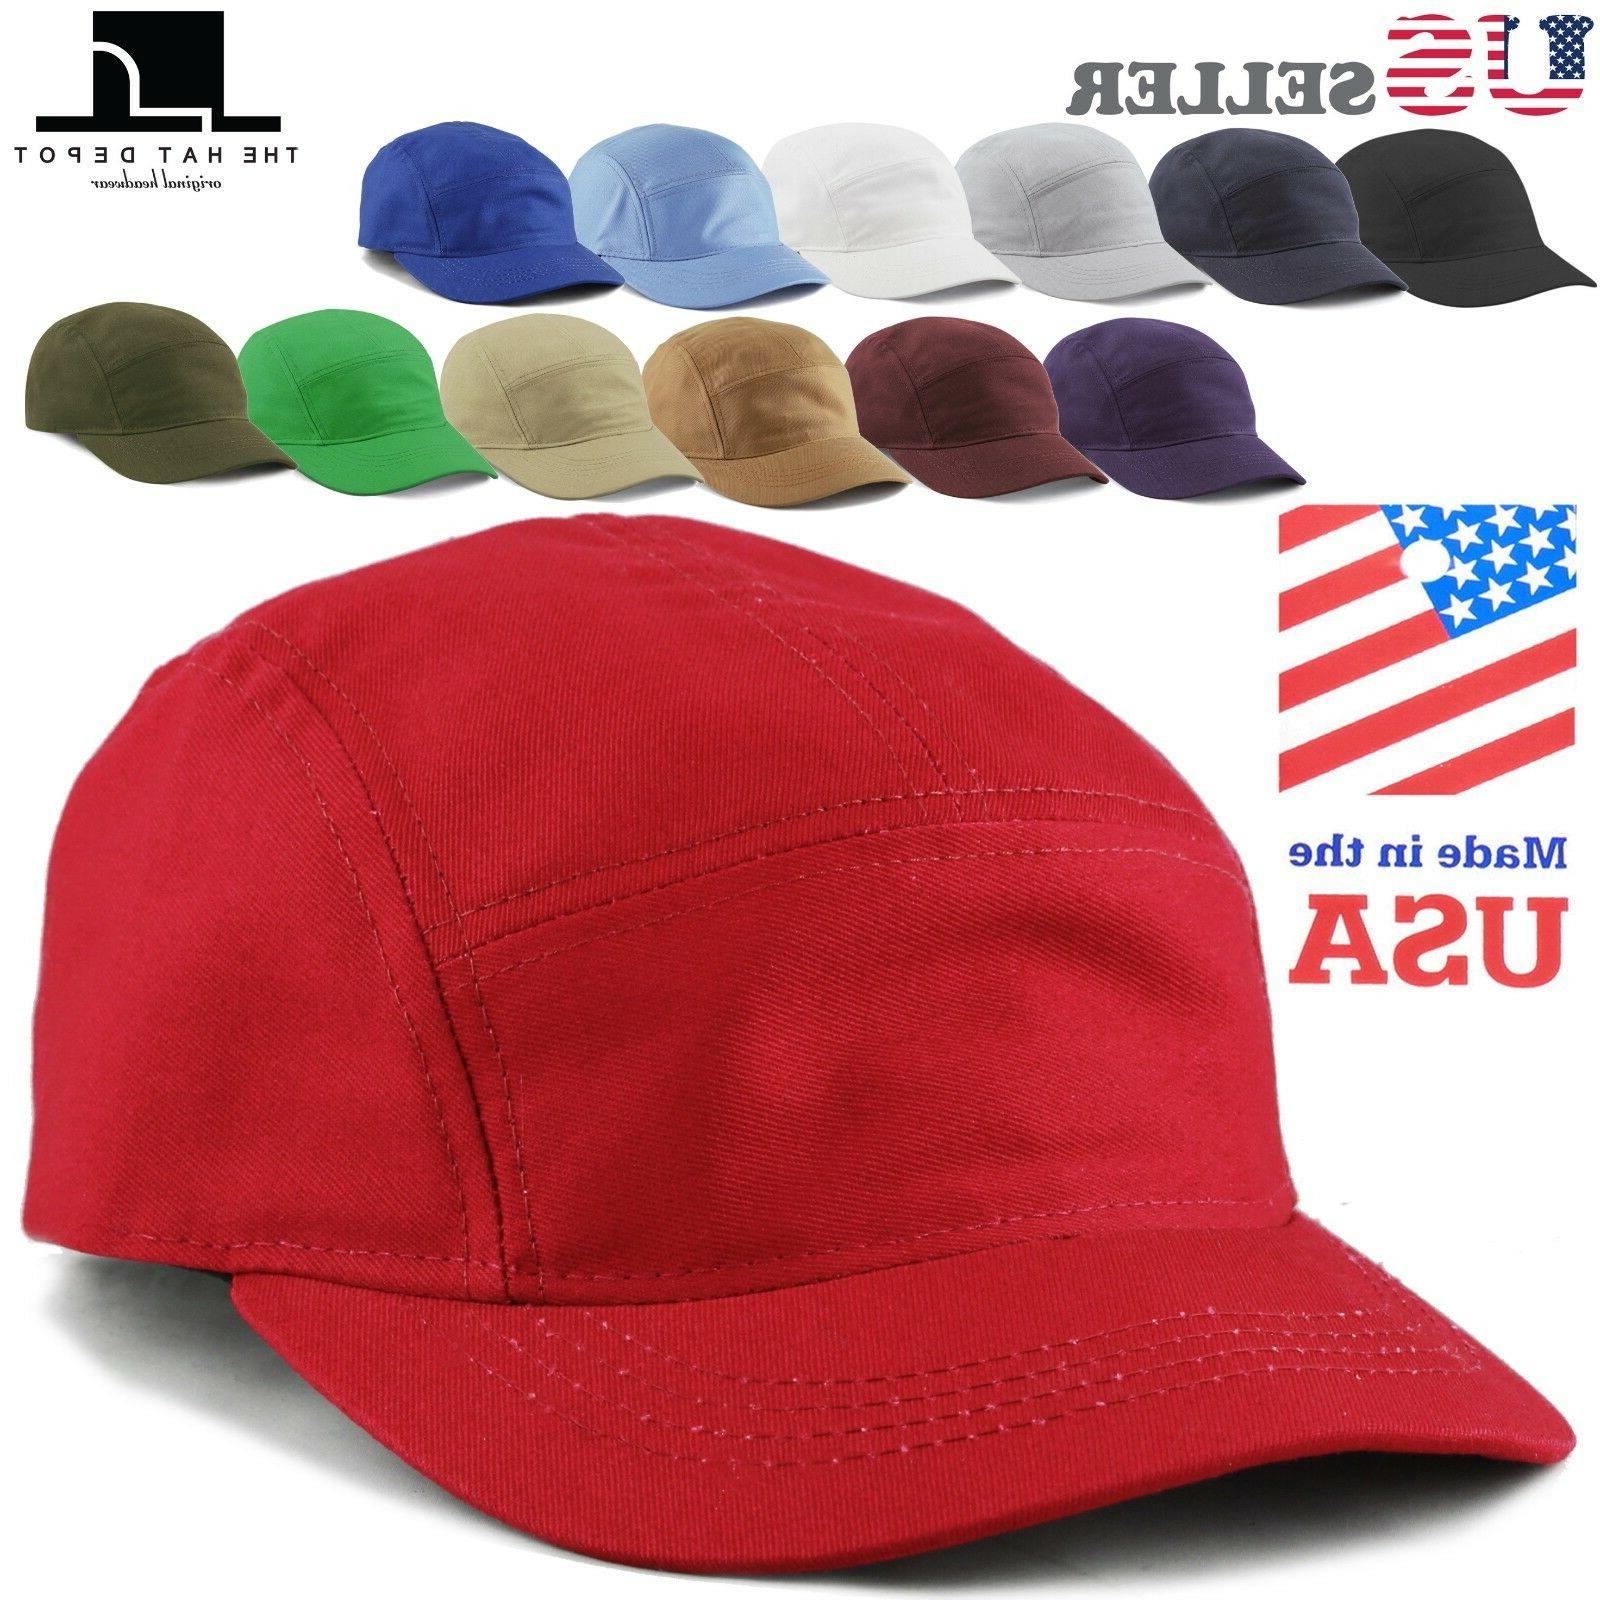 made in usa 5 panel hat running